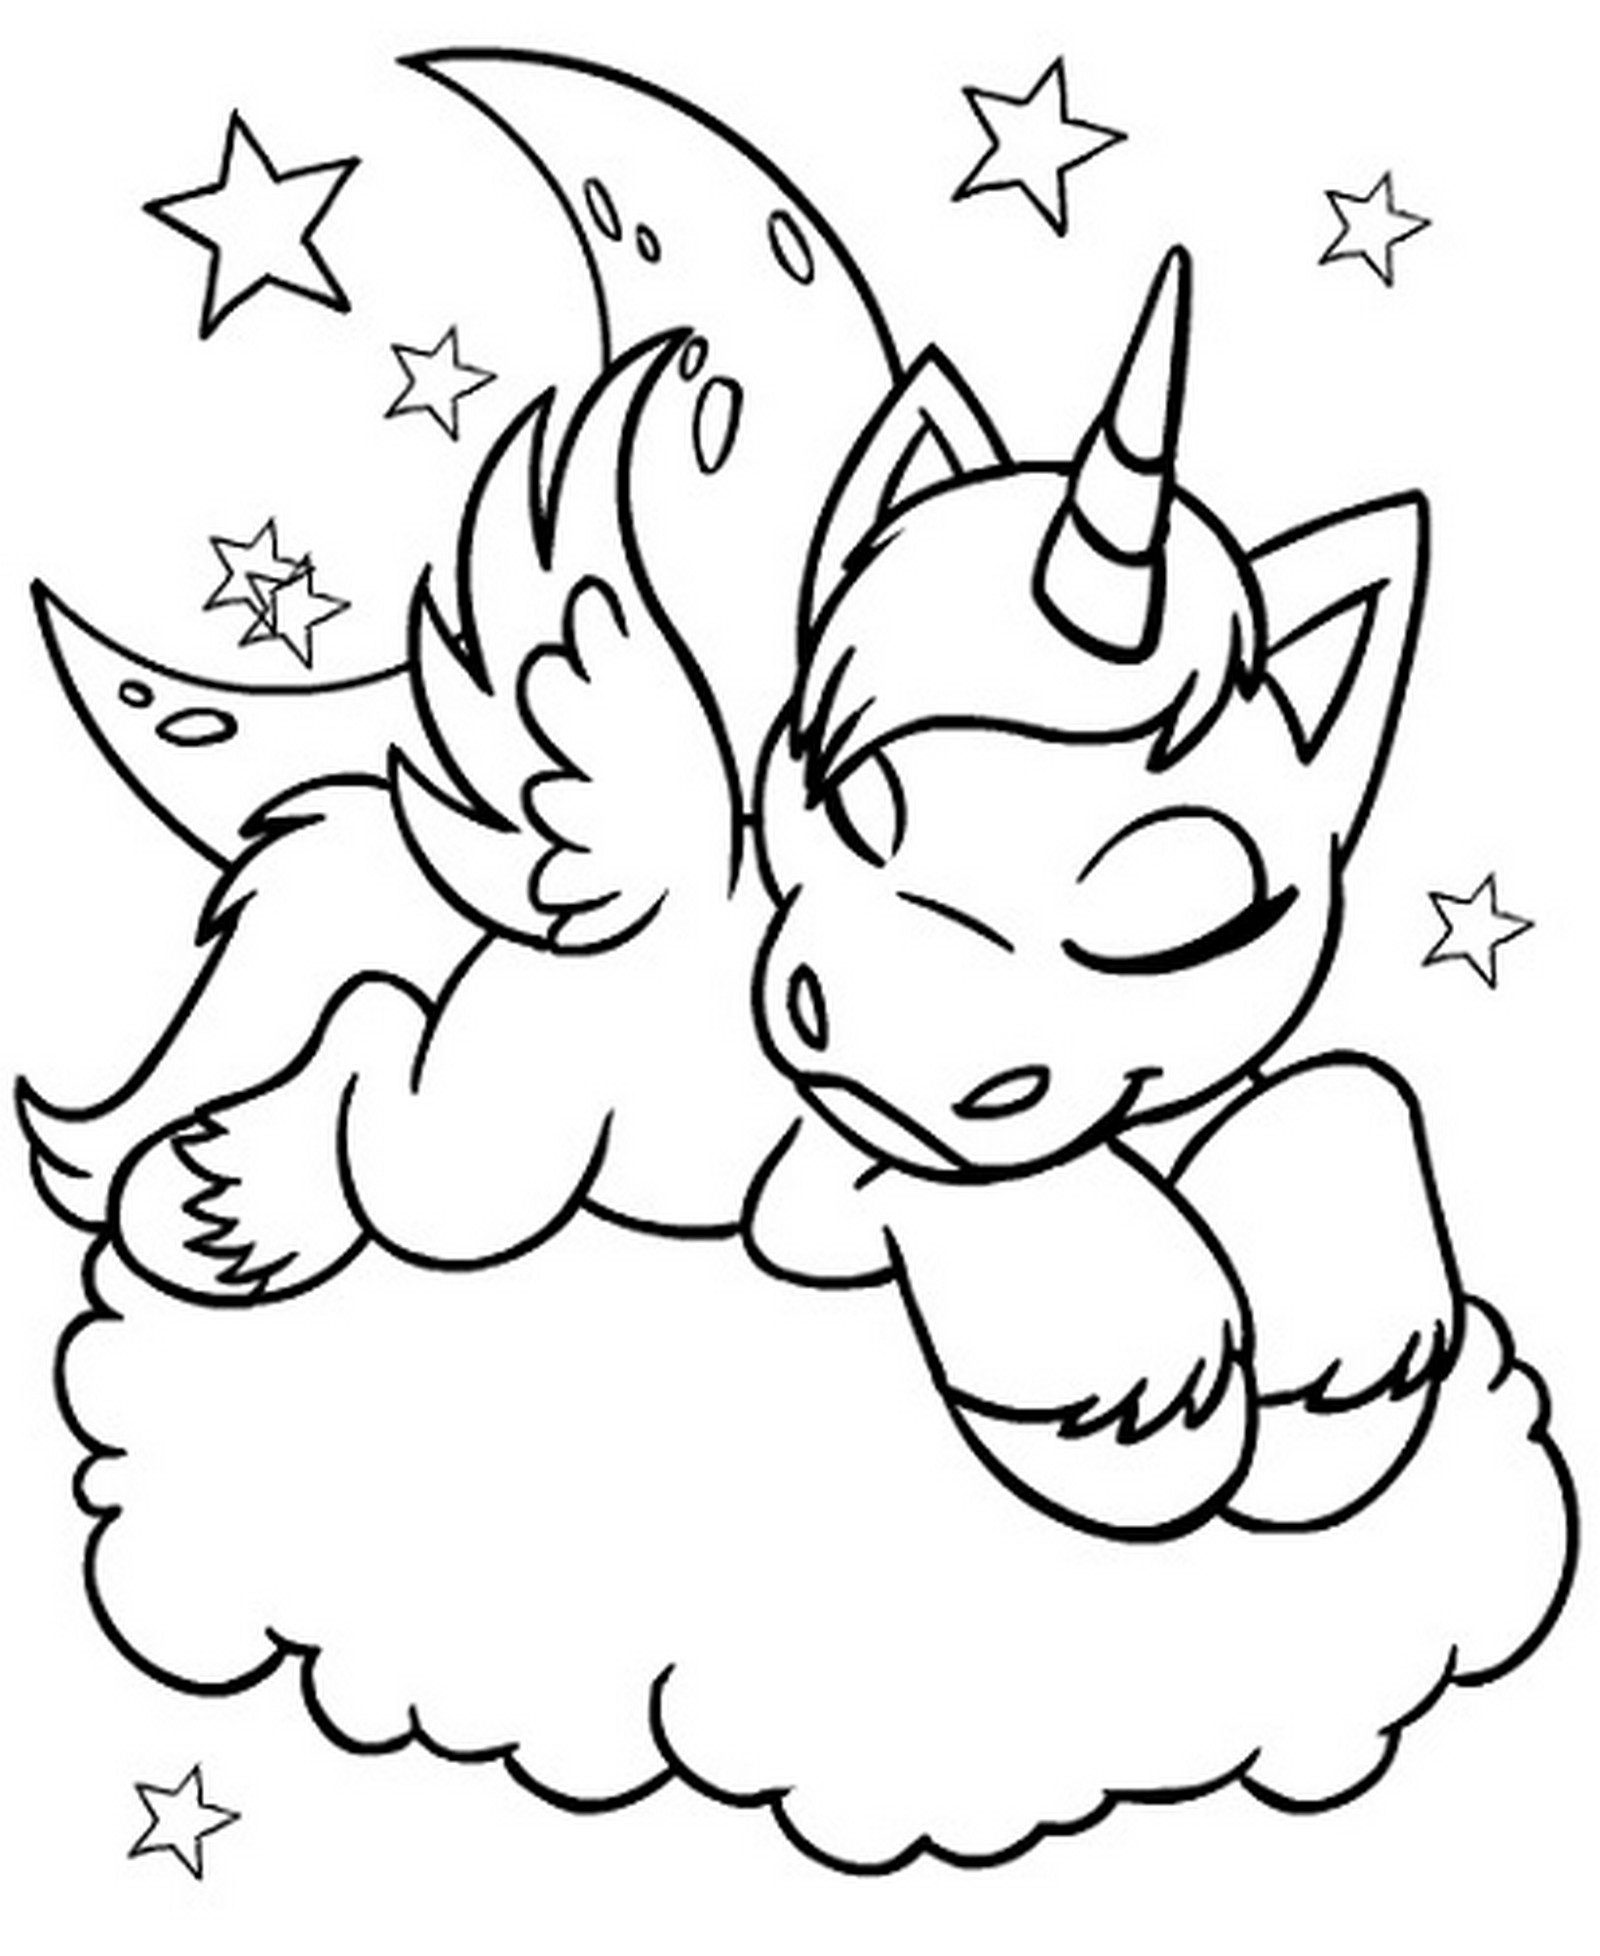 unicorn colouring picture adorable unicorn coloring pages for girls and adults updated unicorn colouring picture